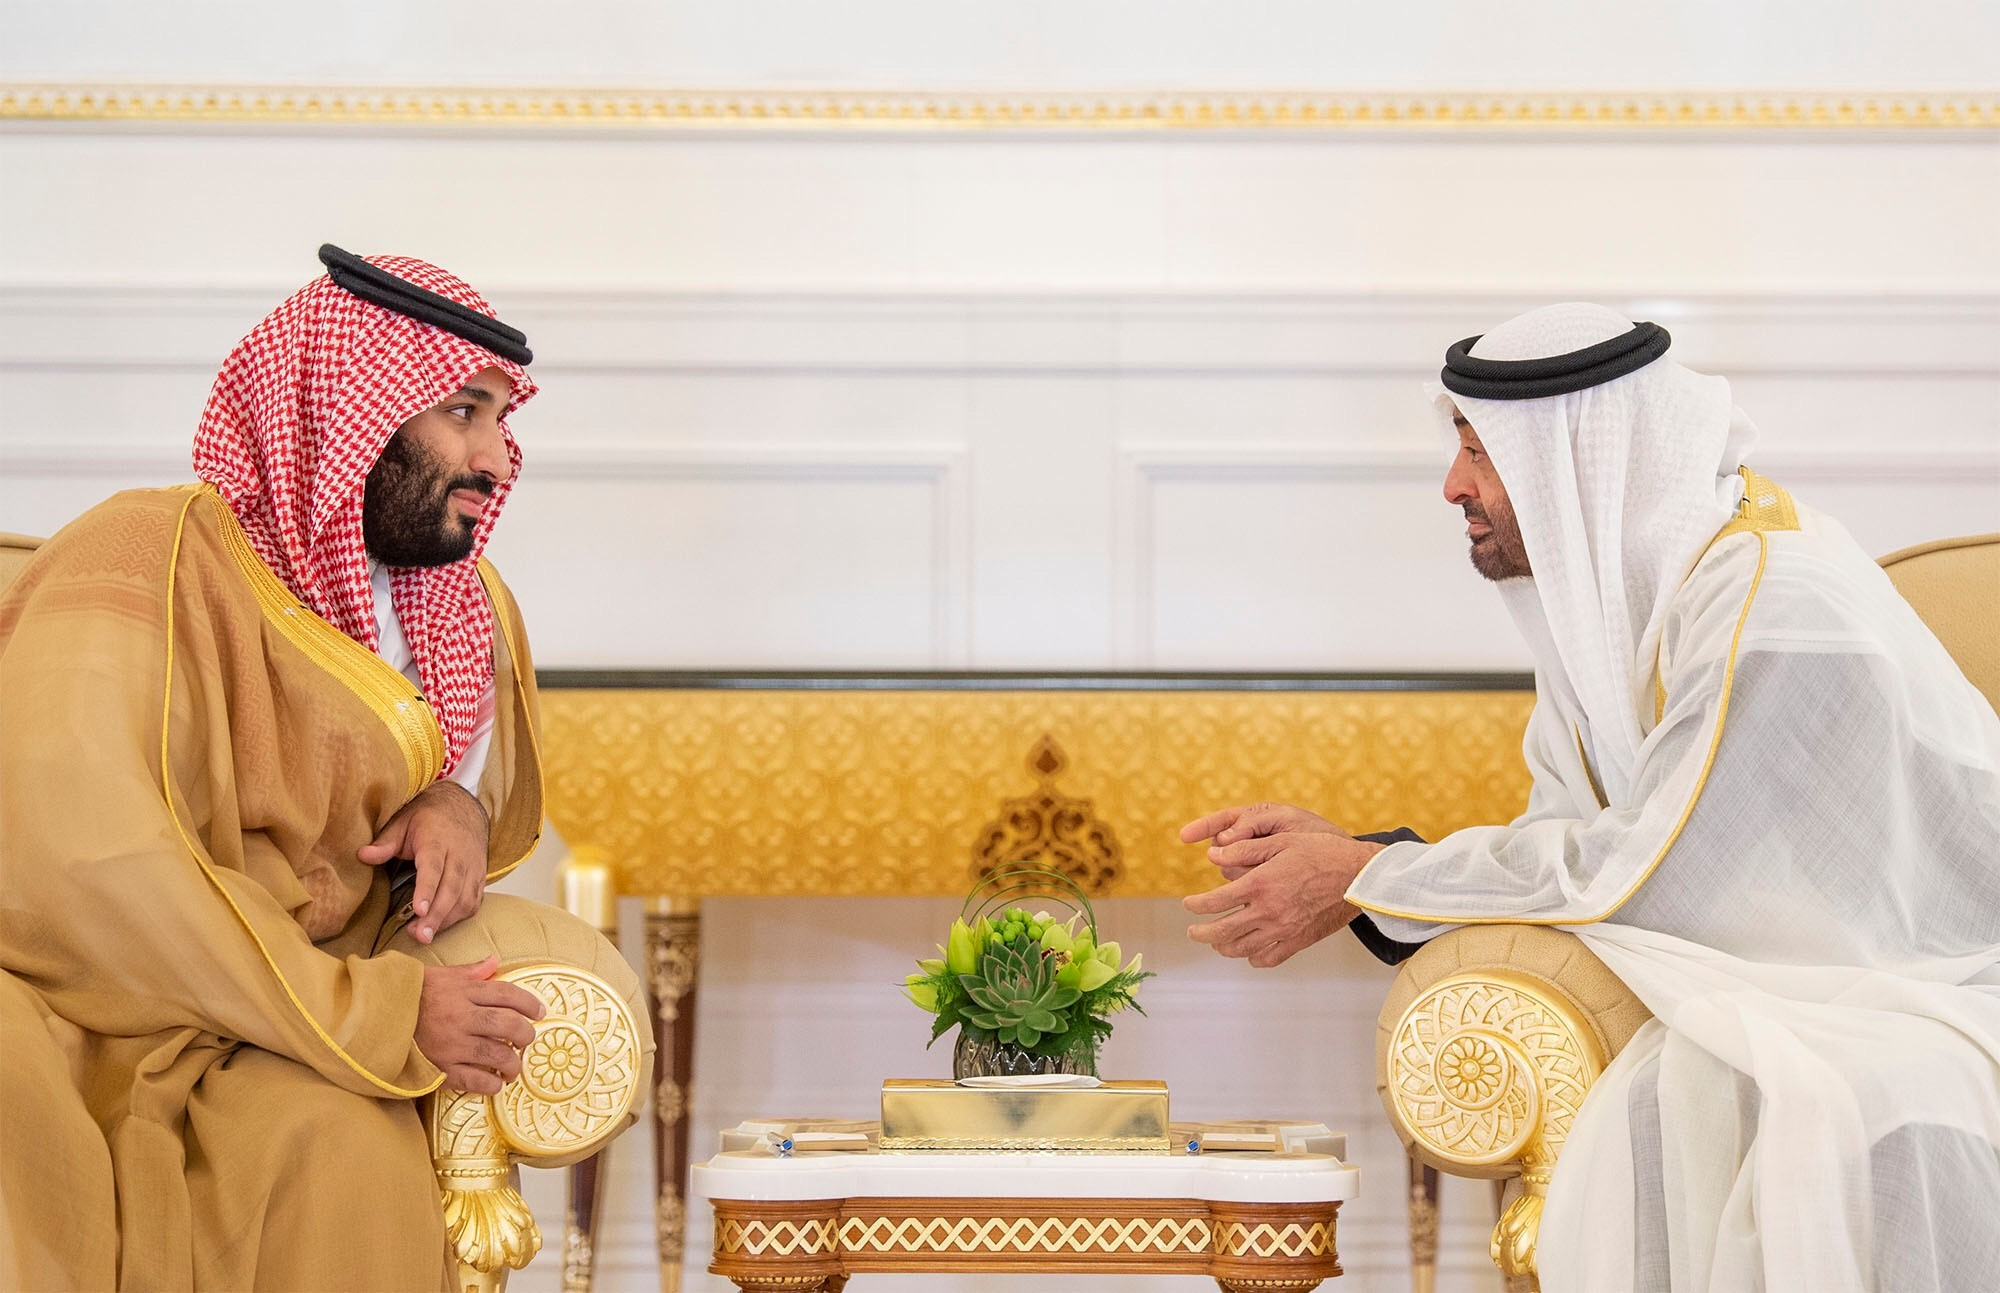 Abu Dhabi's Crown Prince Sheikh Mohammed bin Zayed al-Nahyan talks with Saudi Arabia's Crown Prince Mohammed bin Salman on 22 November, 2018 (Reuters)